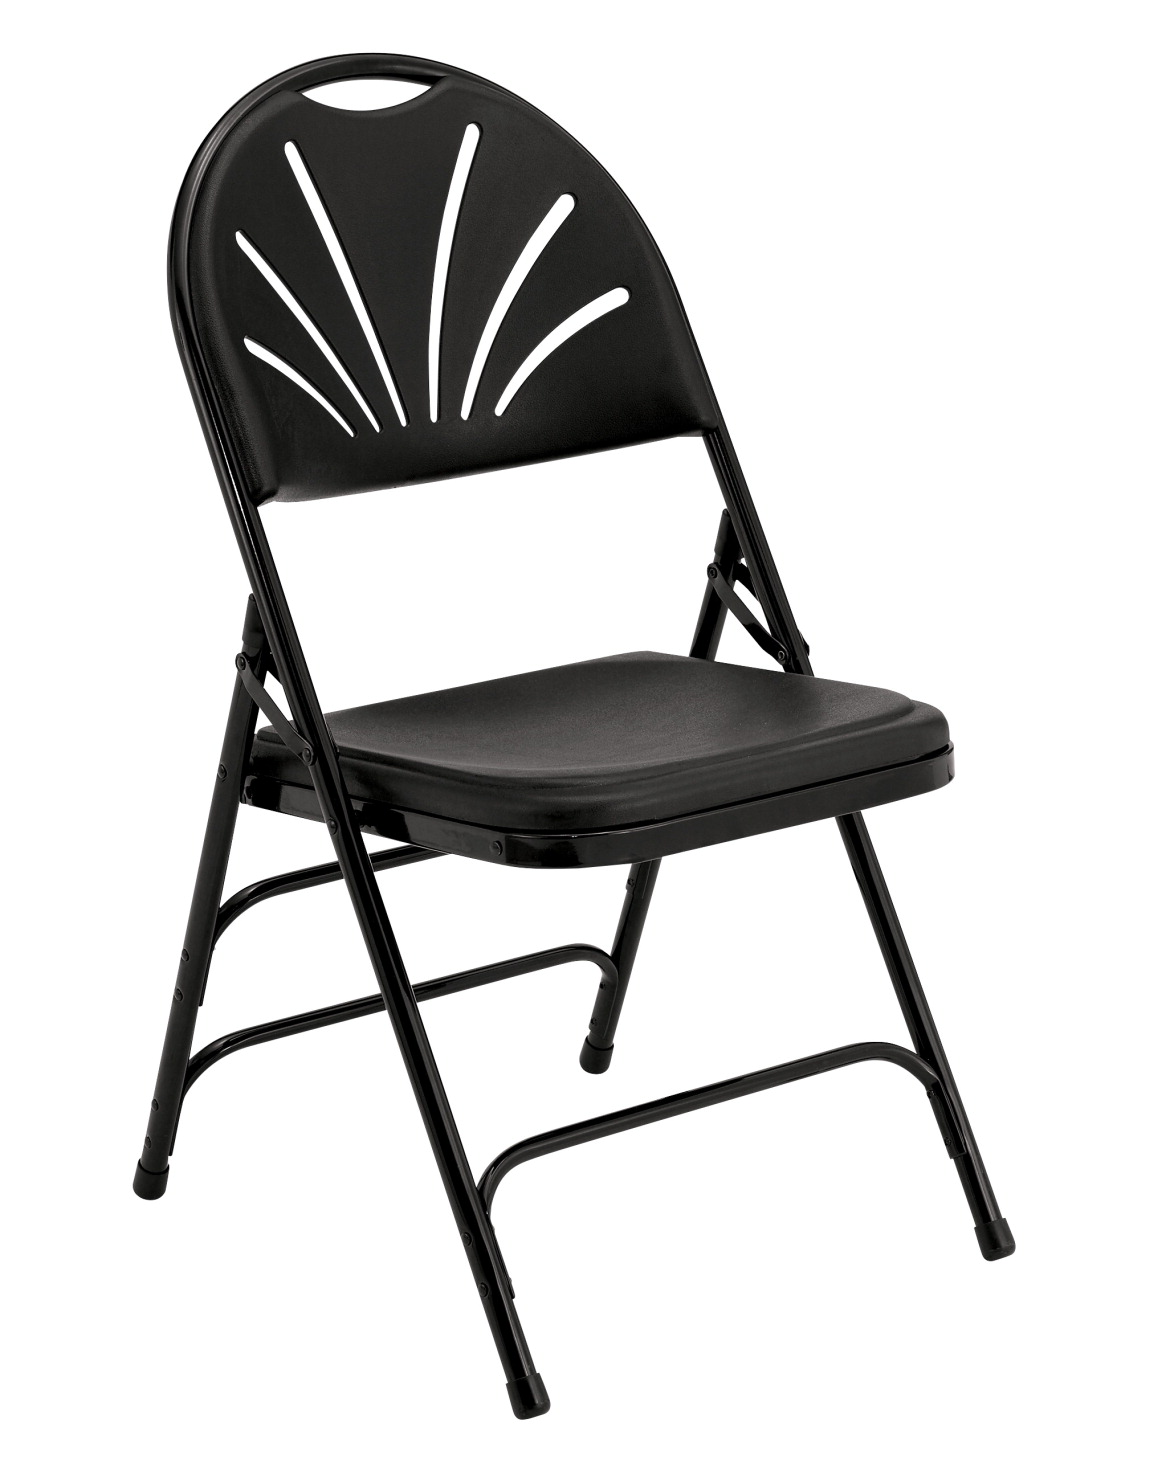 National Public Seating 1100 Series Premium Fan Back Folding Chair, 17-3/4 Inch Seat, Various Options